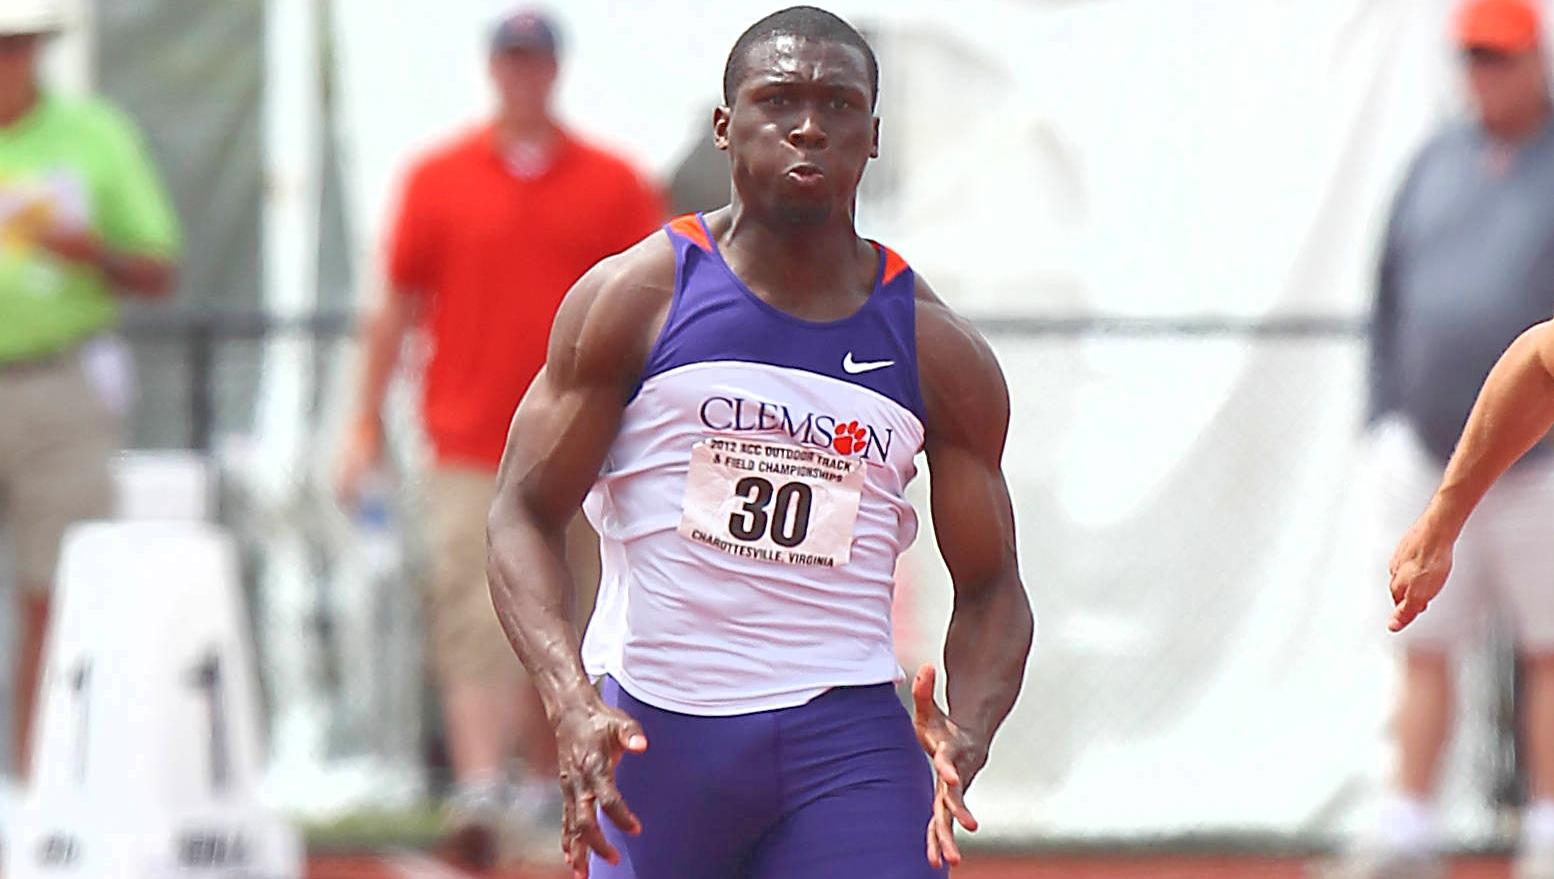 Clemson Track & Field Qualifies 26 Student-Athletes for NCAA East Preliminary Round